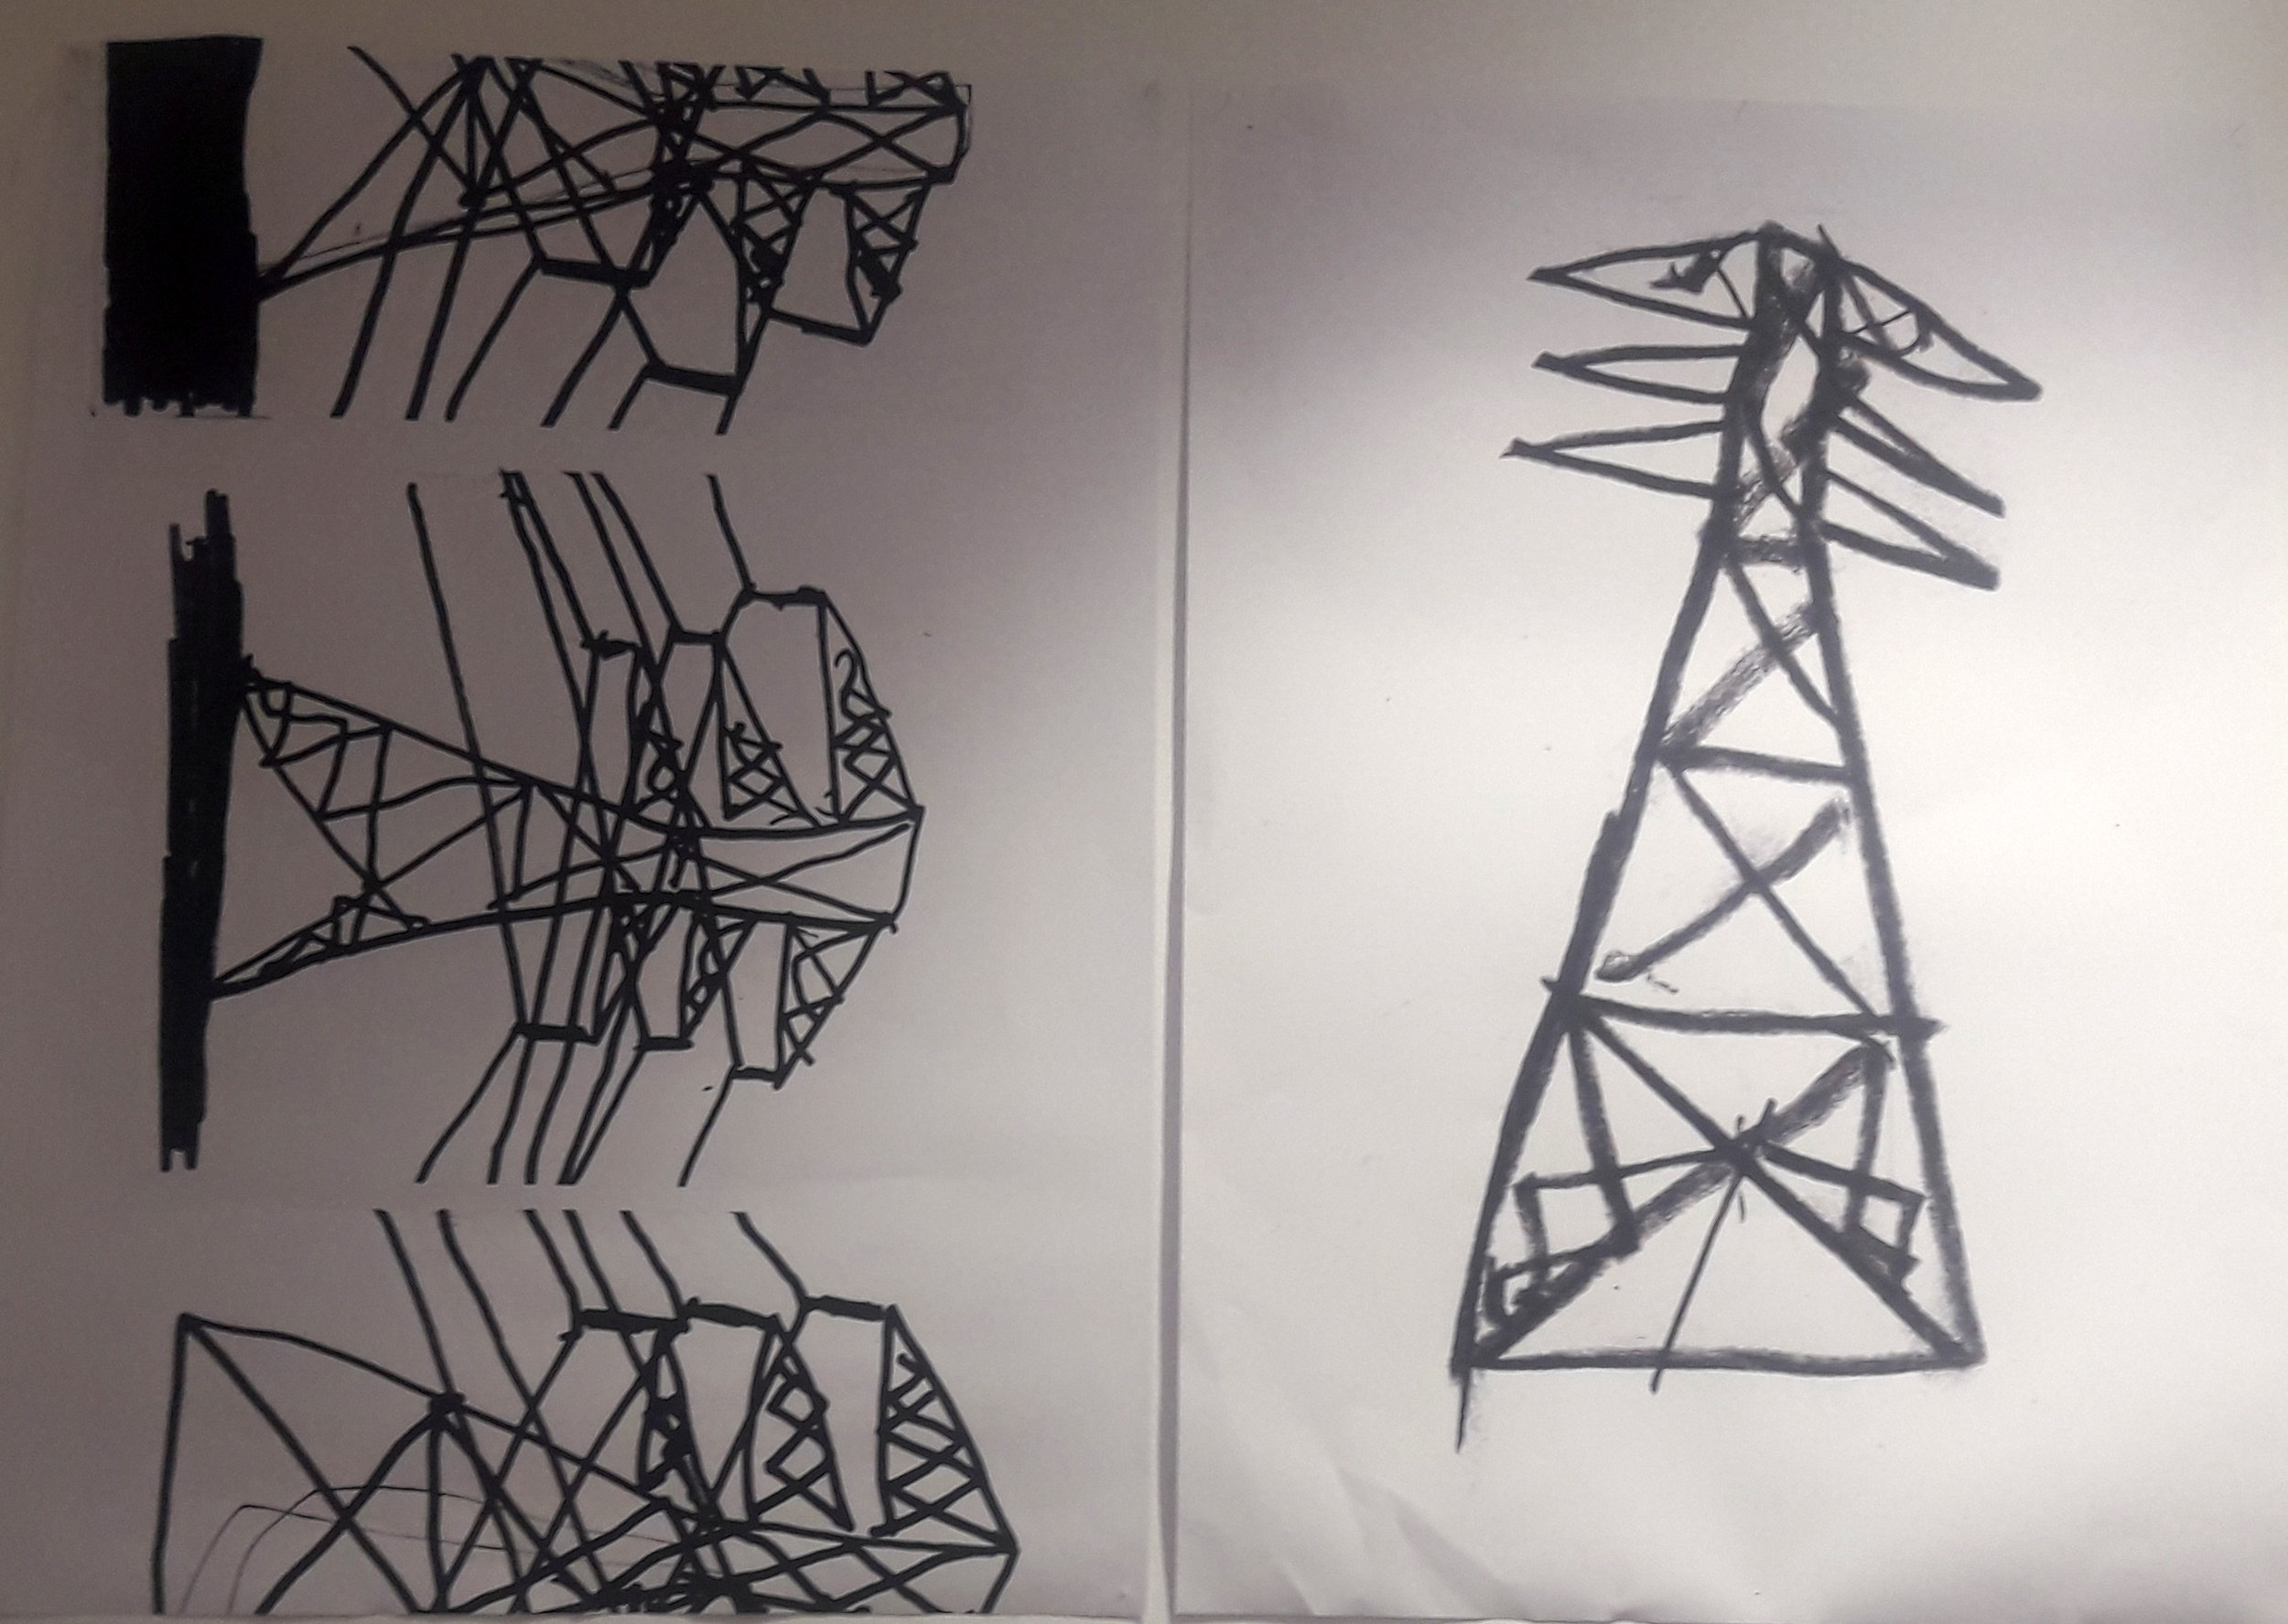 Craig Murray - Pylons & Pylon